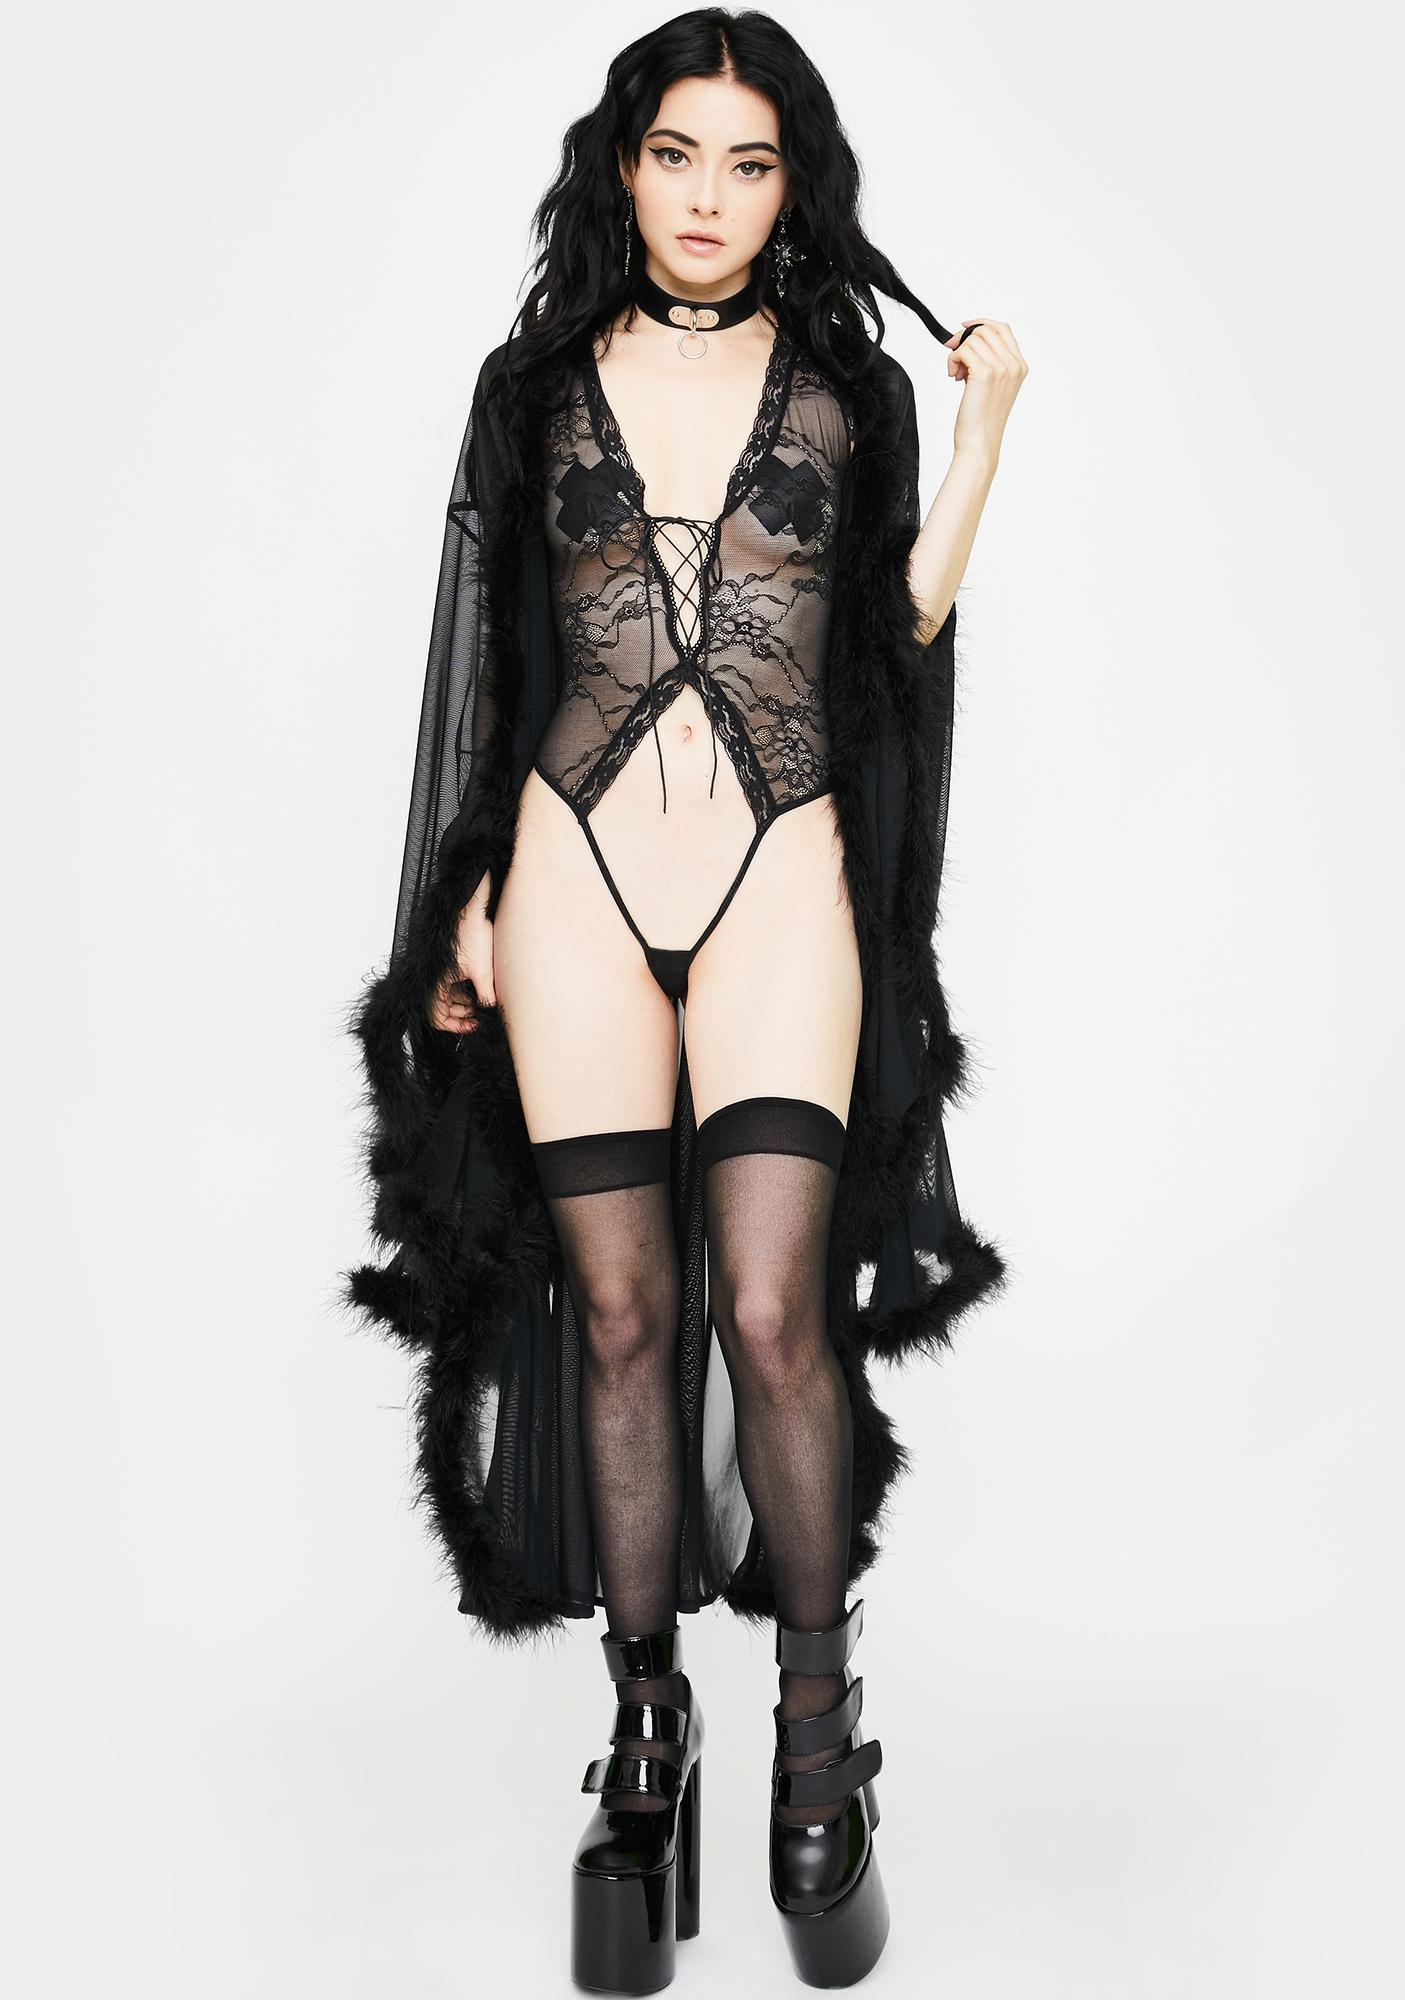 Roma Wicked Deviant Lace Teddy